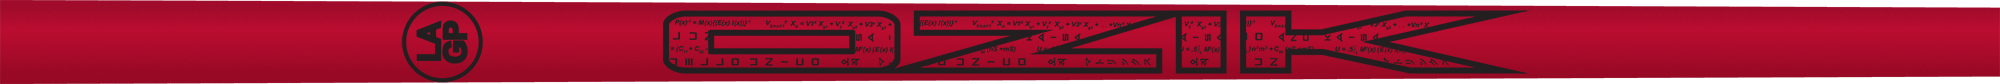 Ozik White Tie: Candy Apple Red Black Matte - Wood 50 R